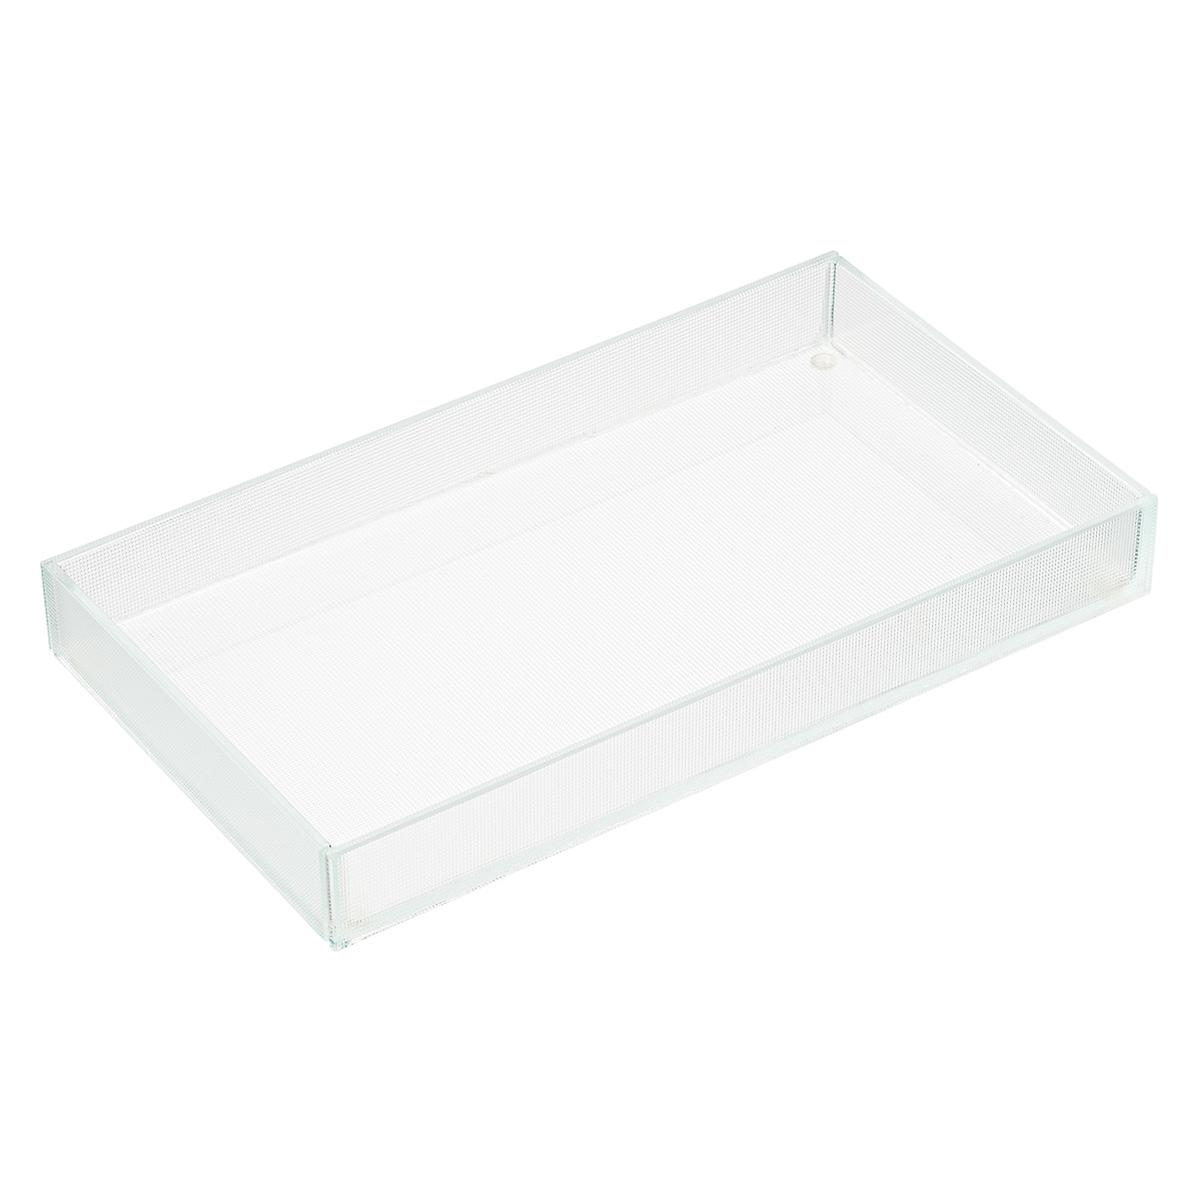 Dimpled Glass Tray